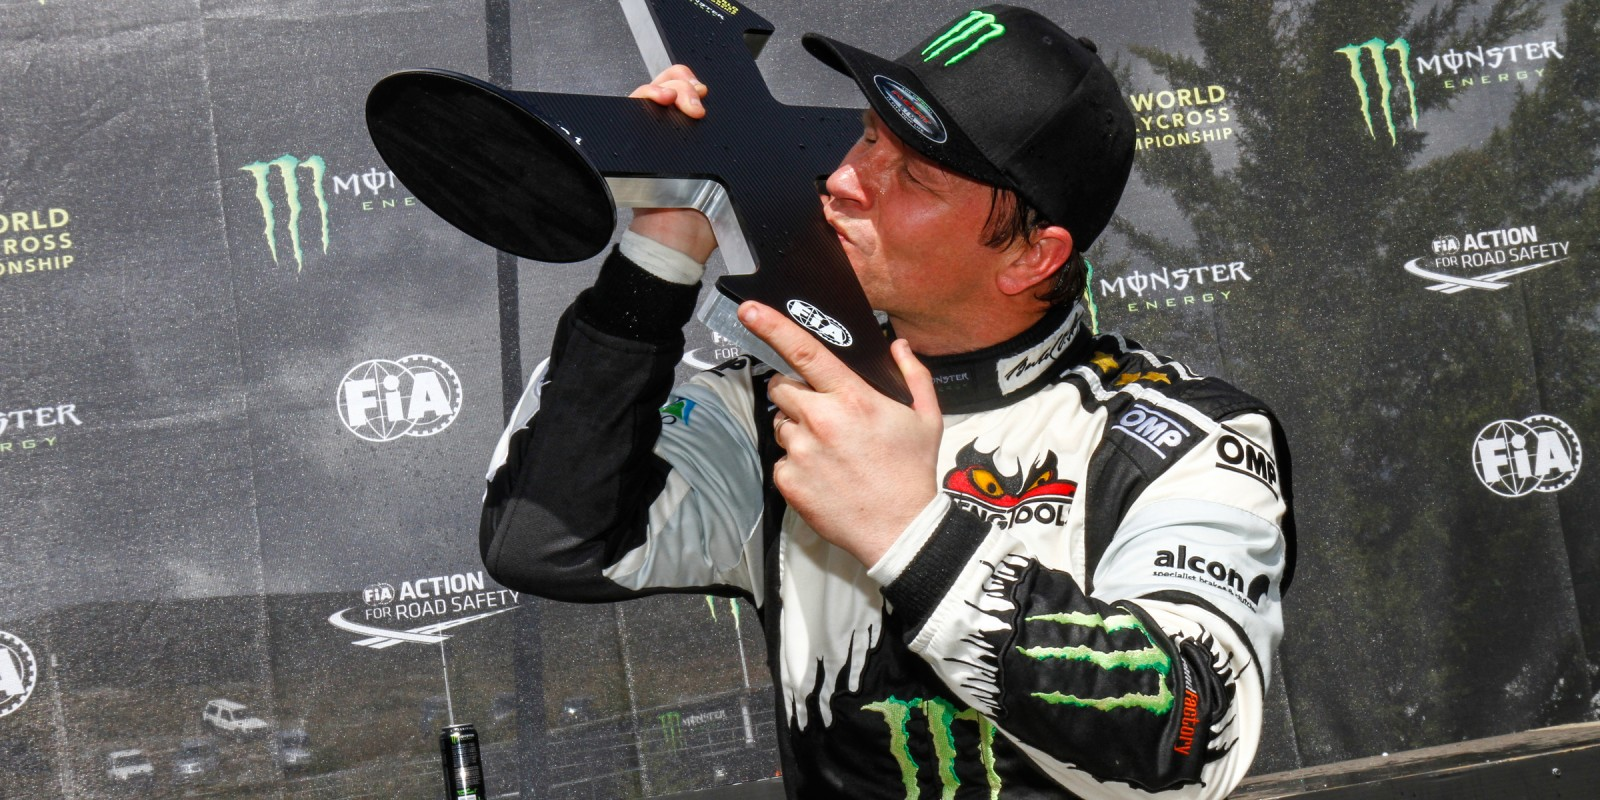 Day two images of Petter Solberg from round one of the FIA World Rallycross Championship, Round One - Race day